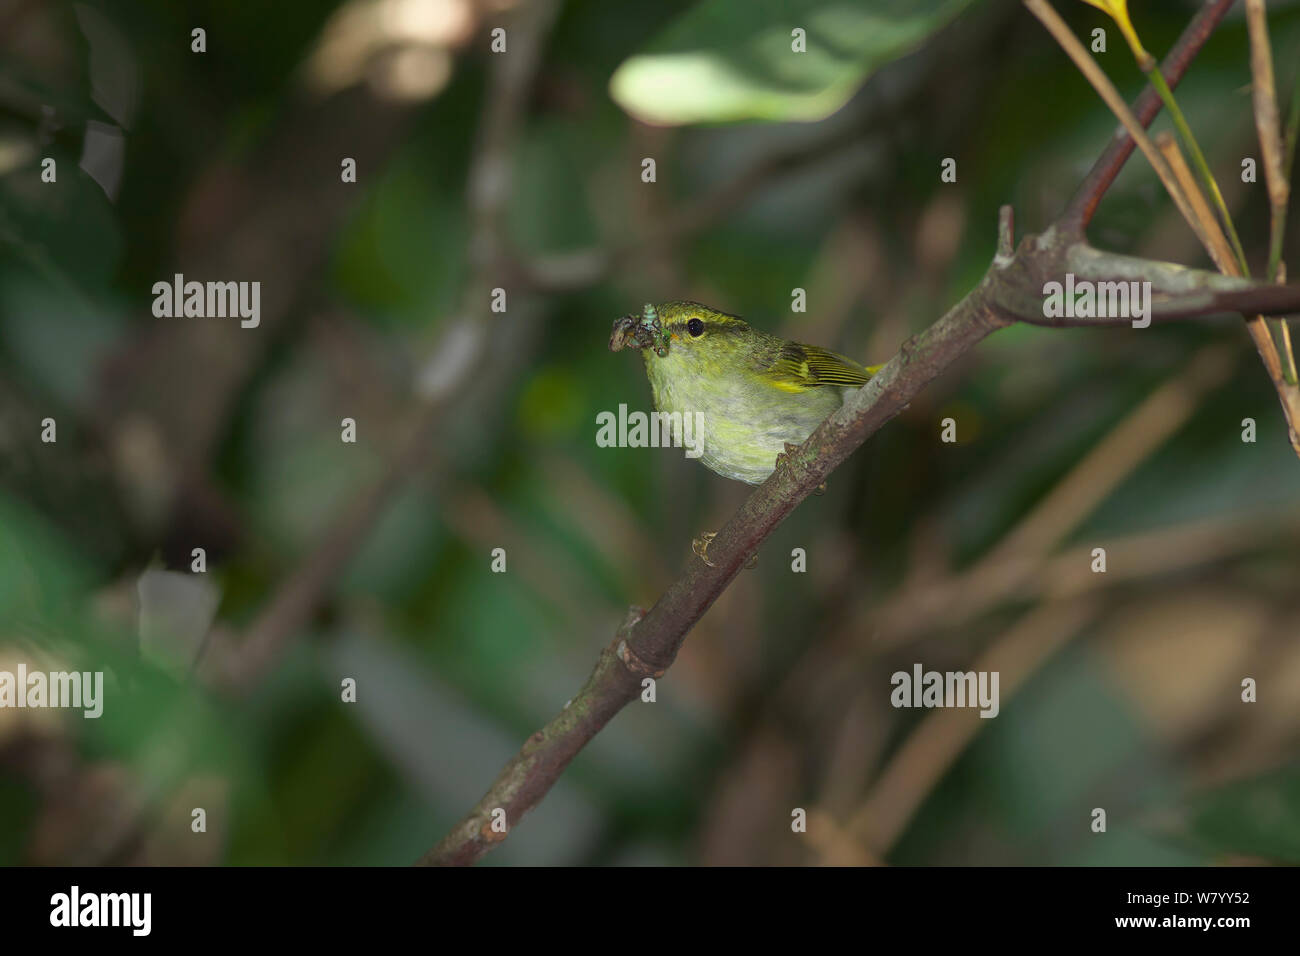 White-tailed leaf-warbler (Phylloscopus davisoni) perched with beak full of prey, DaMingShan moutain, Guangxi province, China, July. Stock Photo